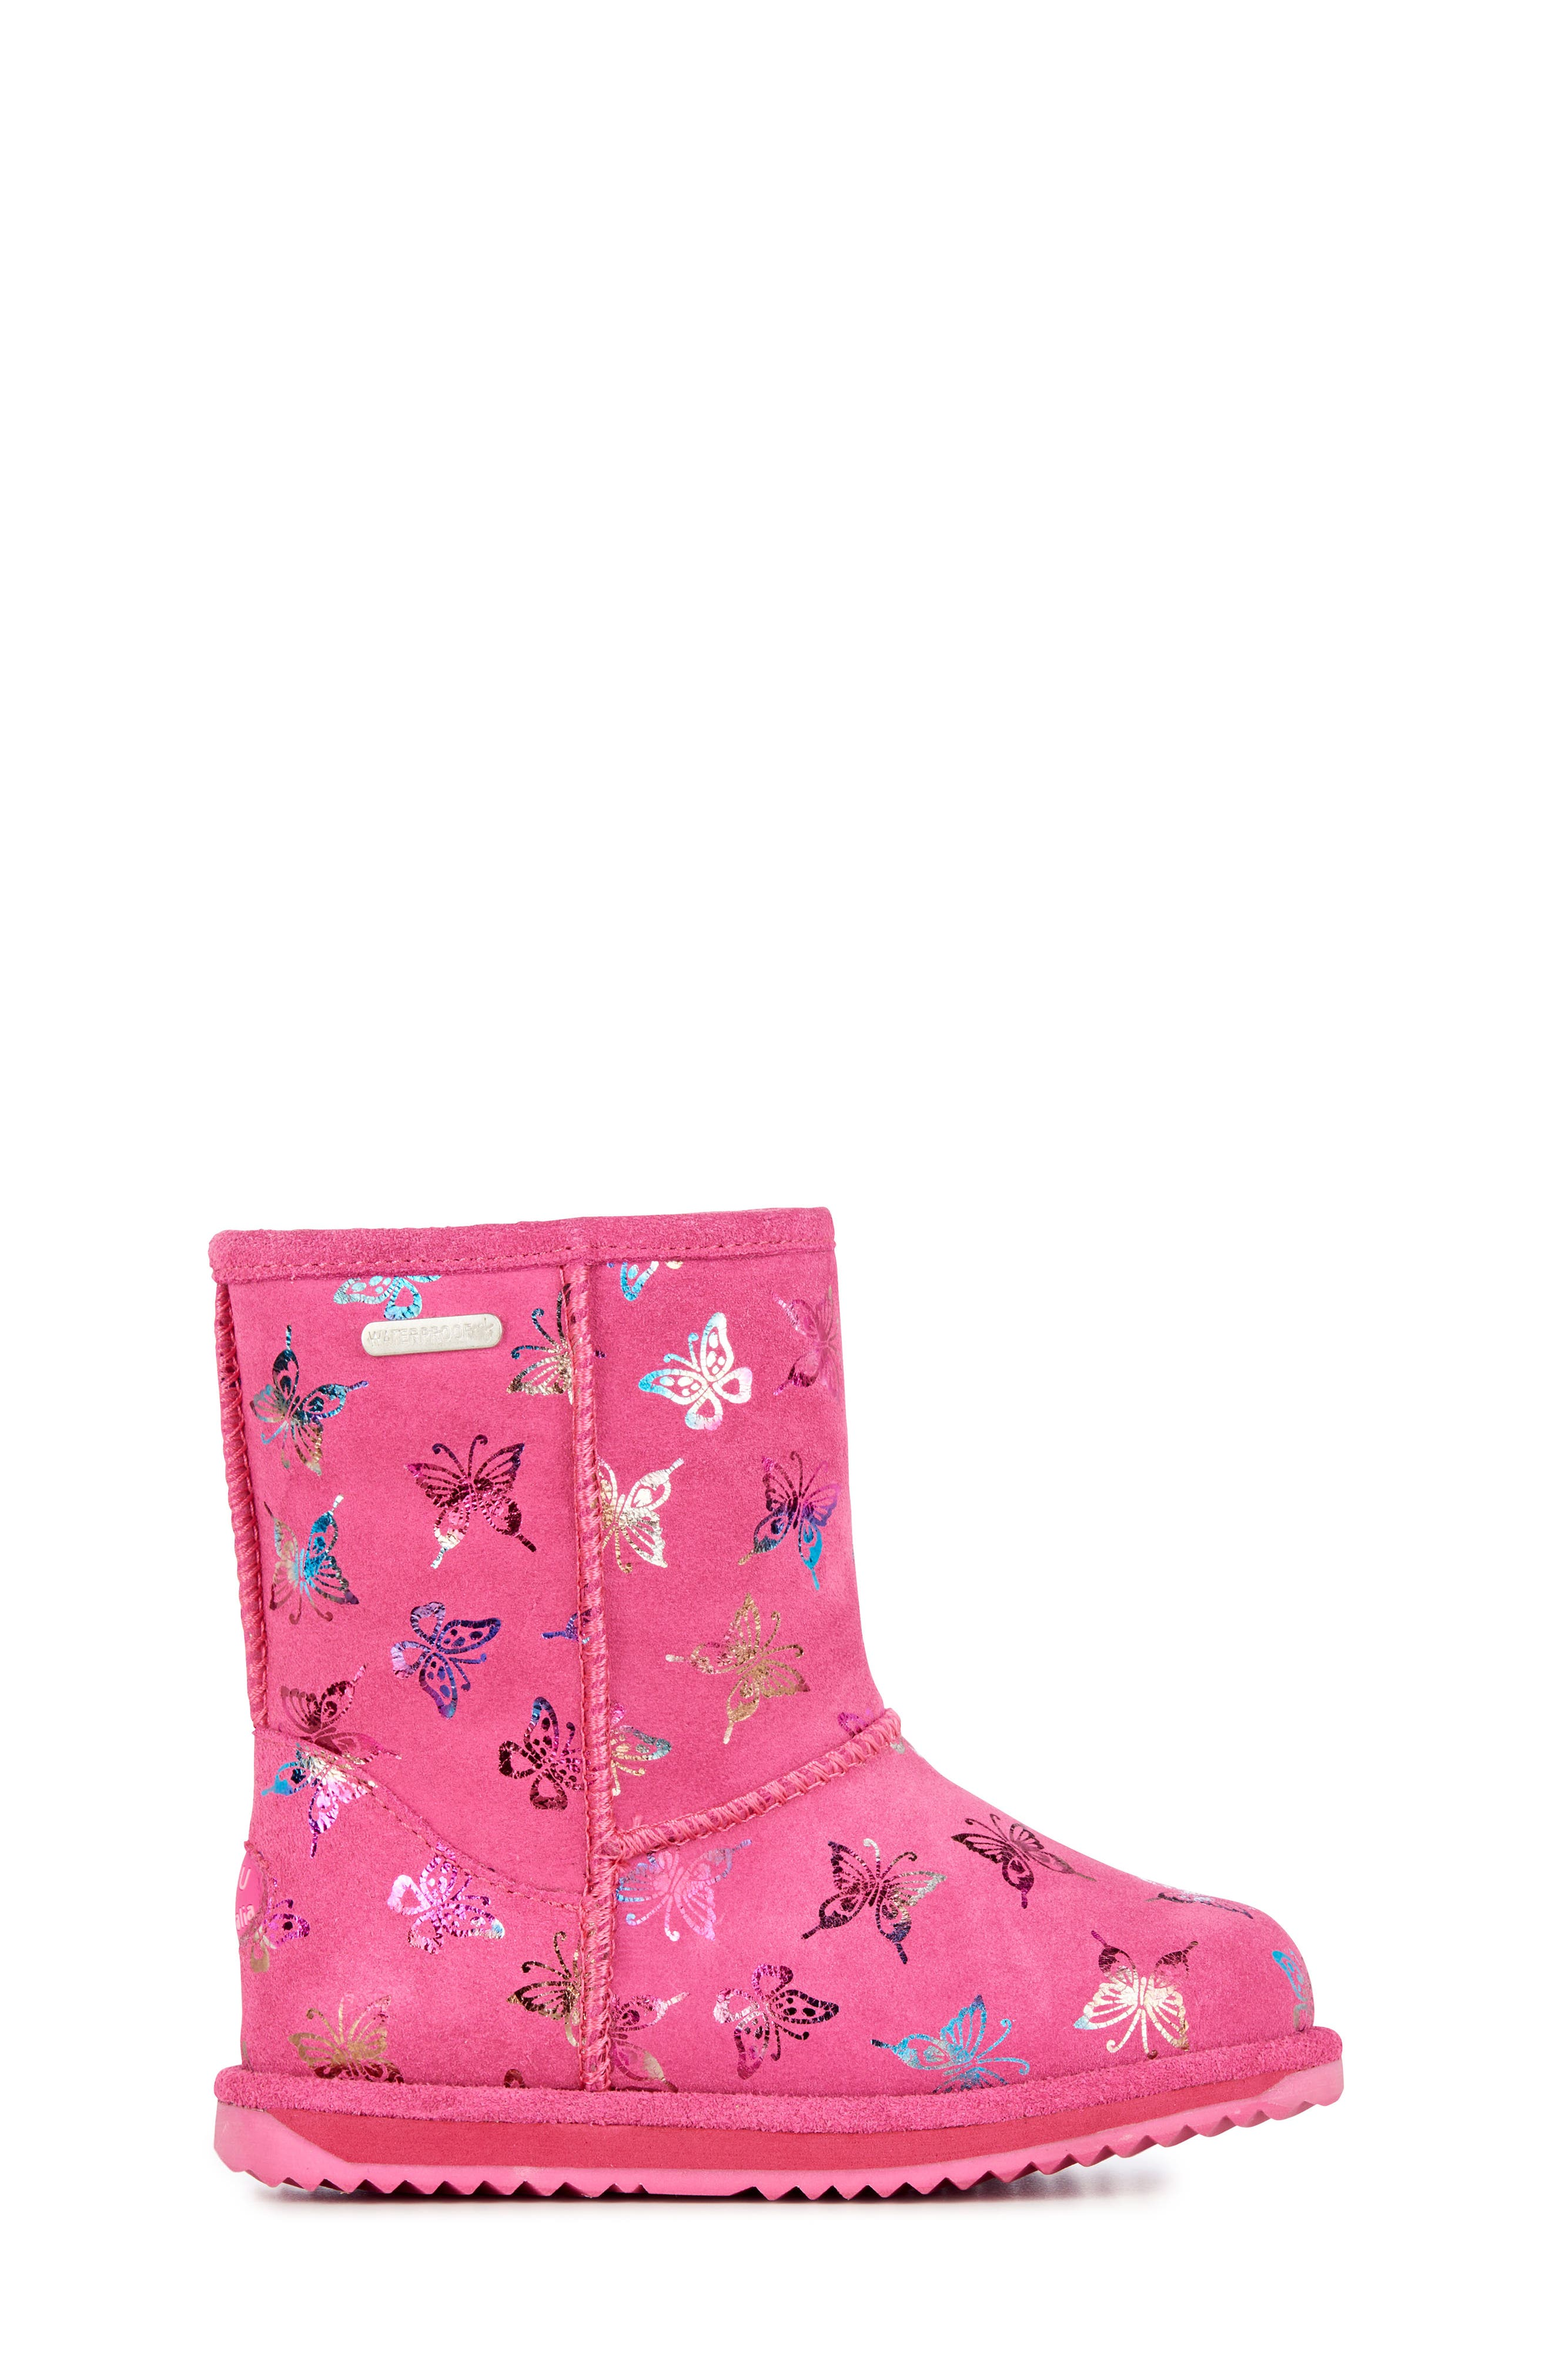 Animal Print Boots,                             Alternate thumbnail 3, color,                             HOT PINK